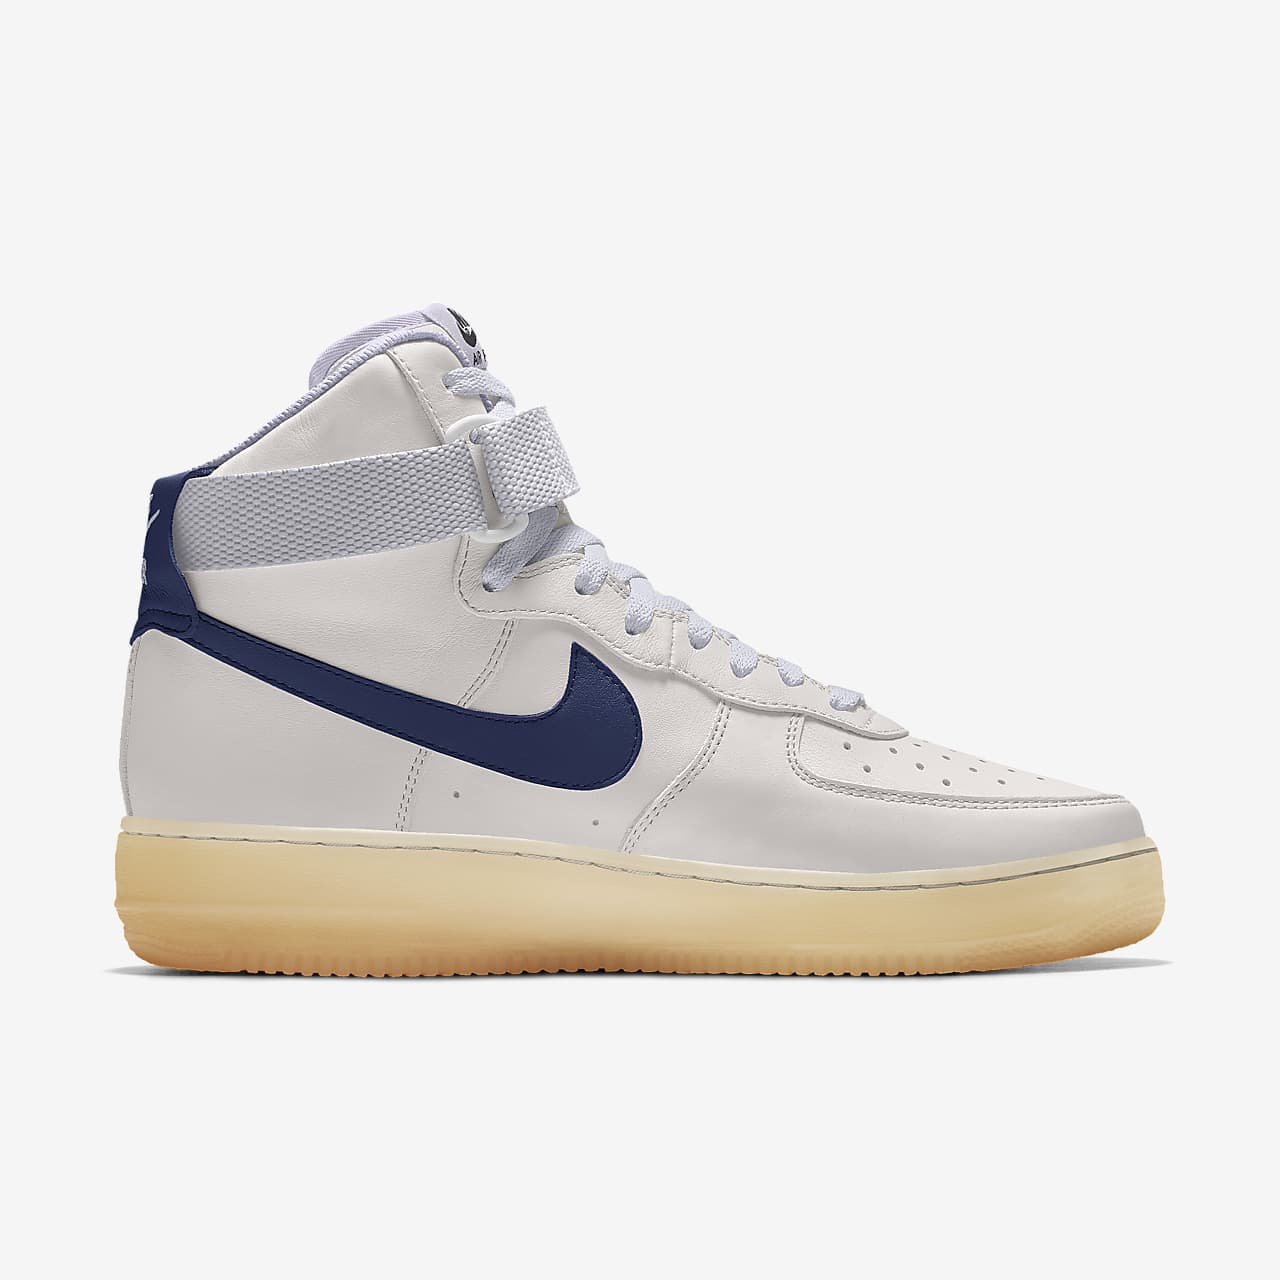 Chaussure personnalisable Nike Air Force 1 High By You pour Homme